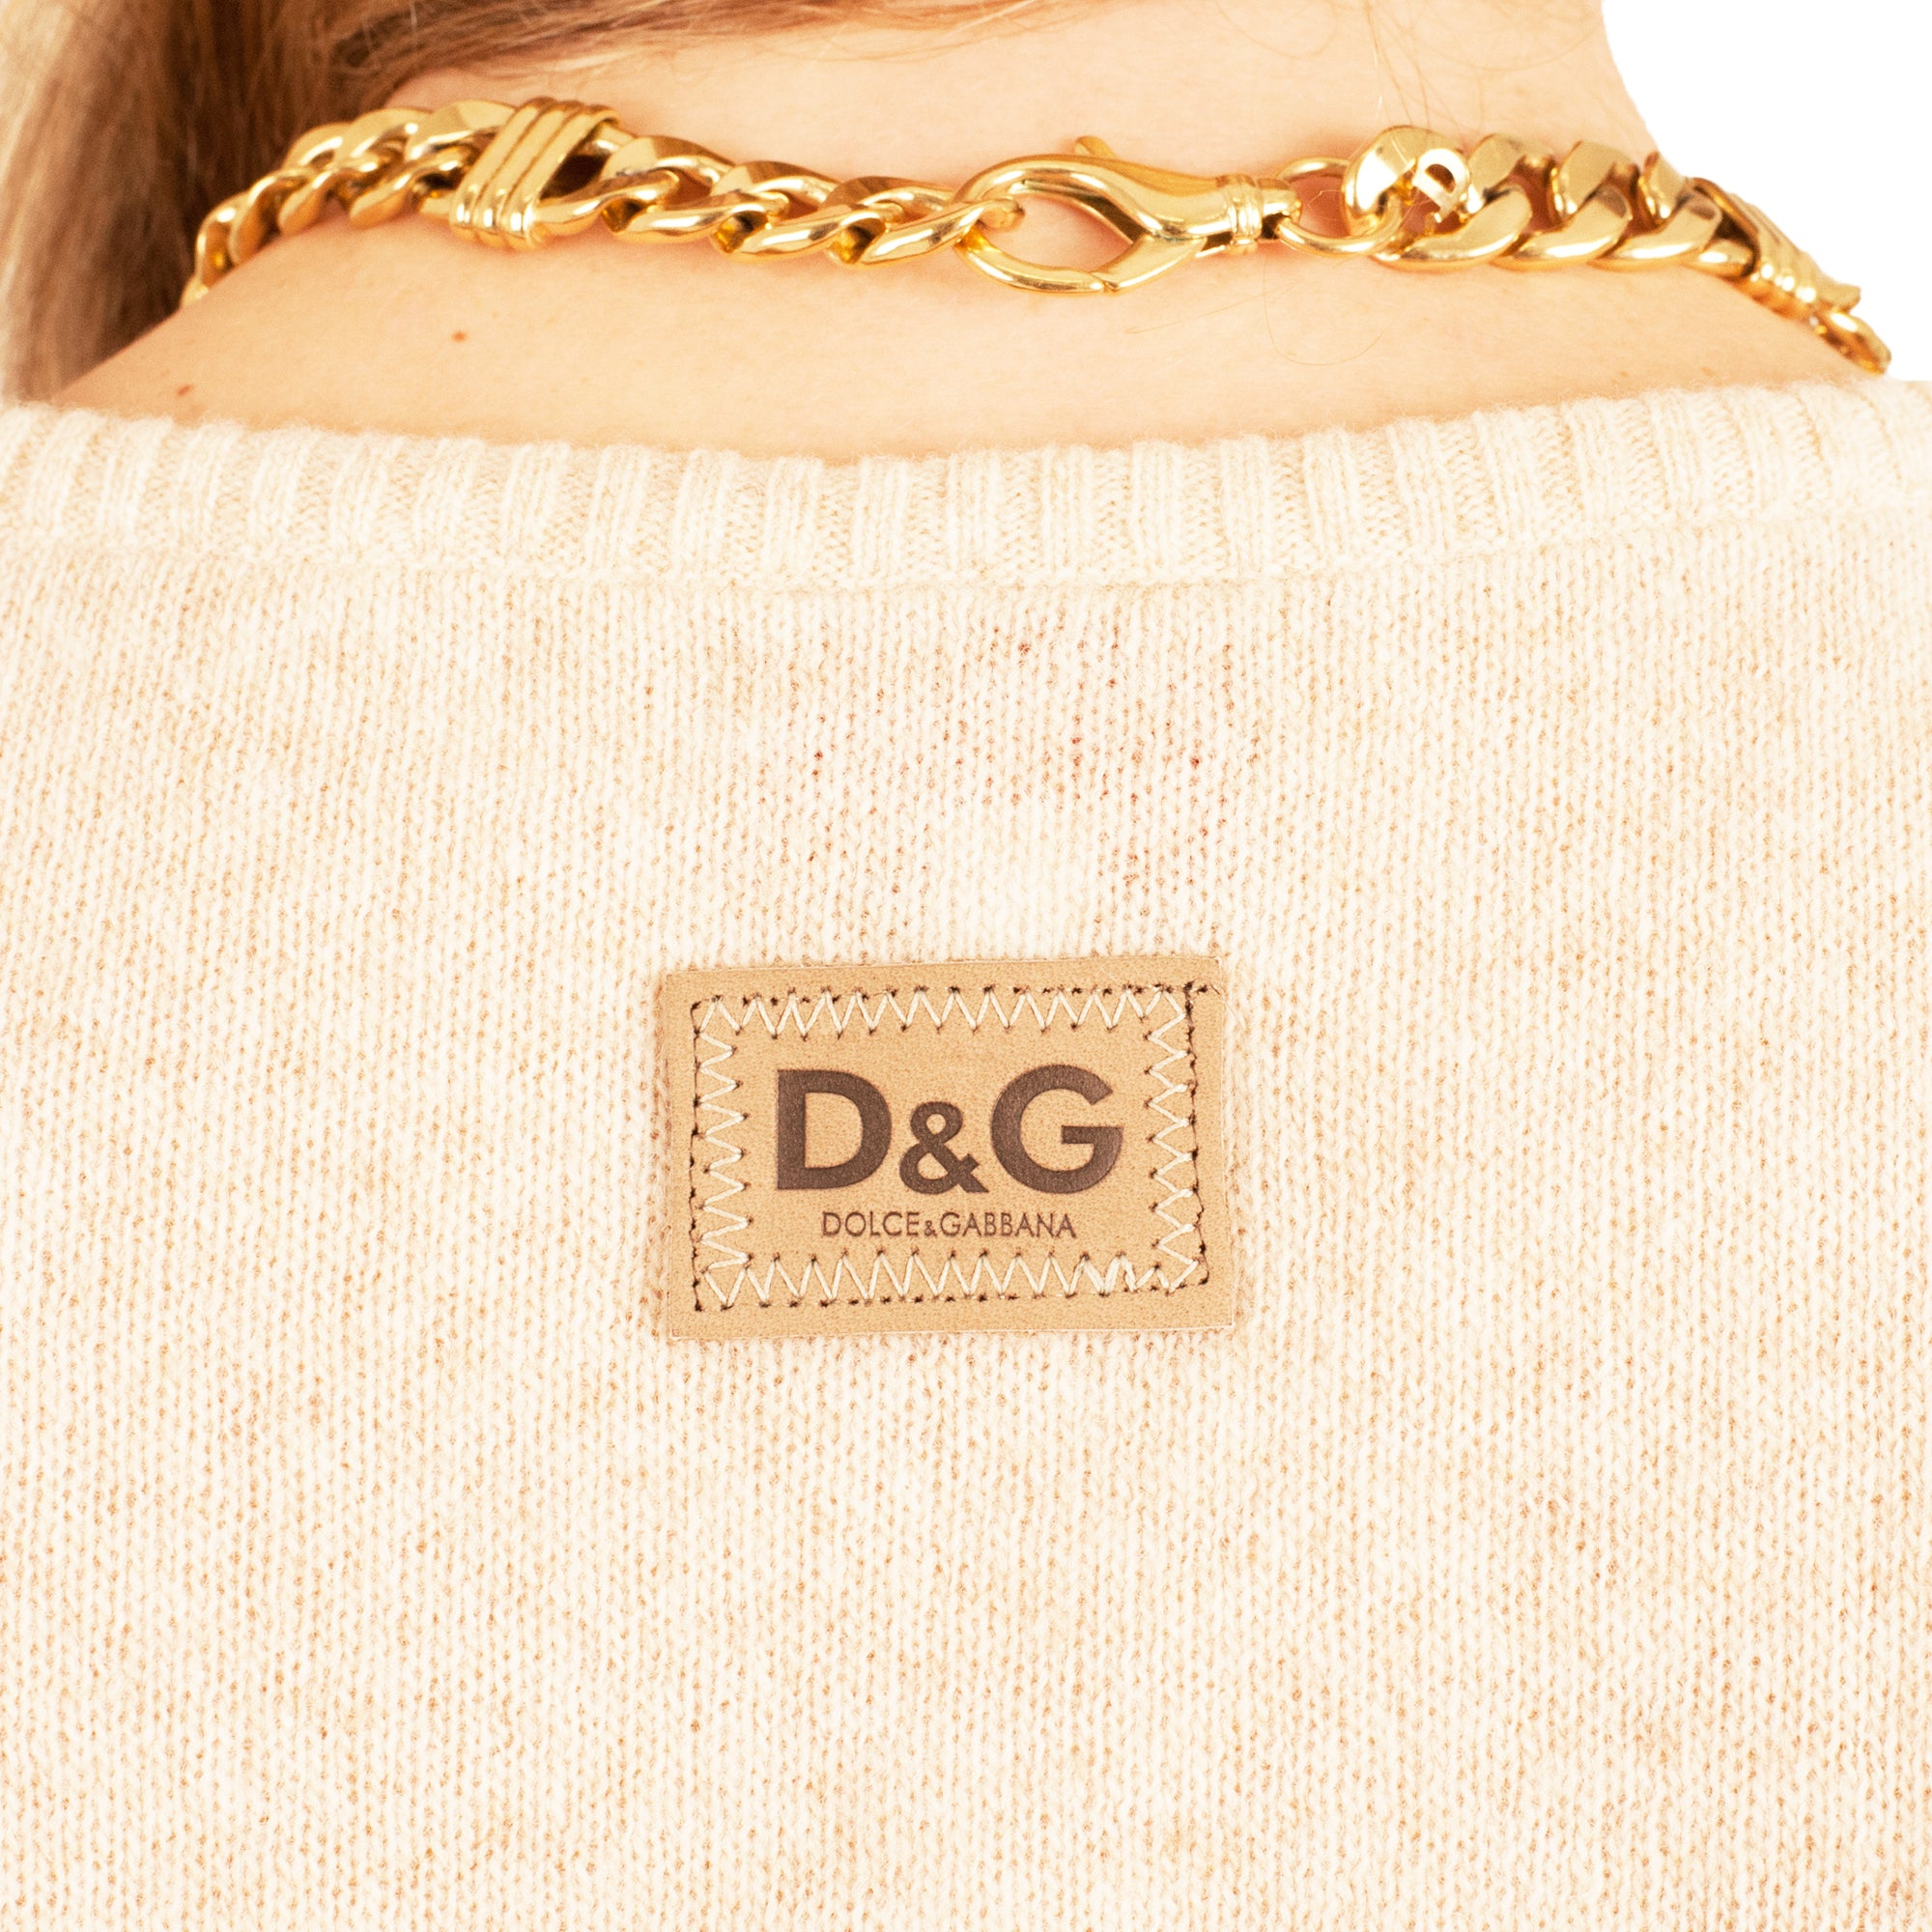 Dolce and Gabbana Knit Vest (Sand) UK 6-10